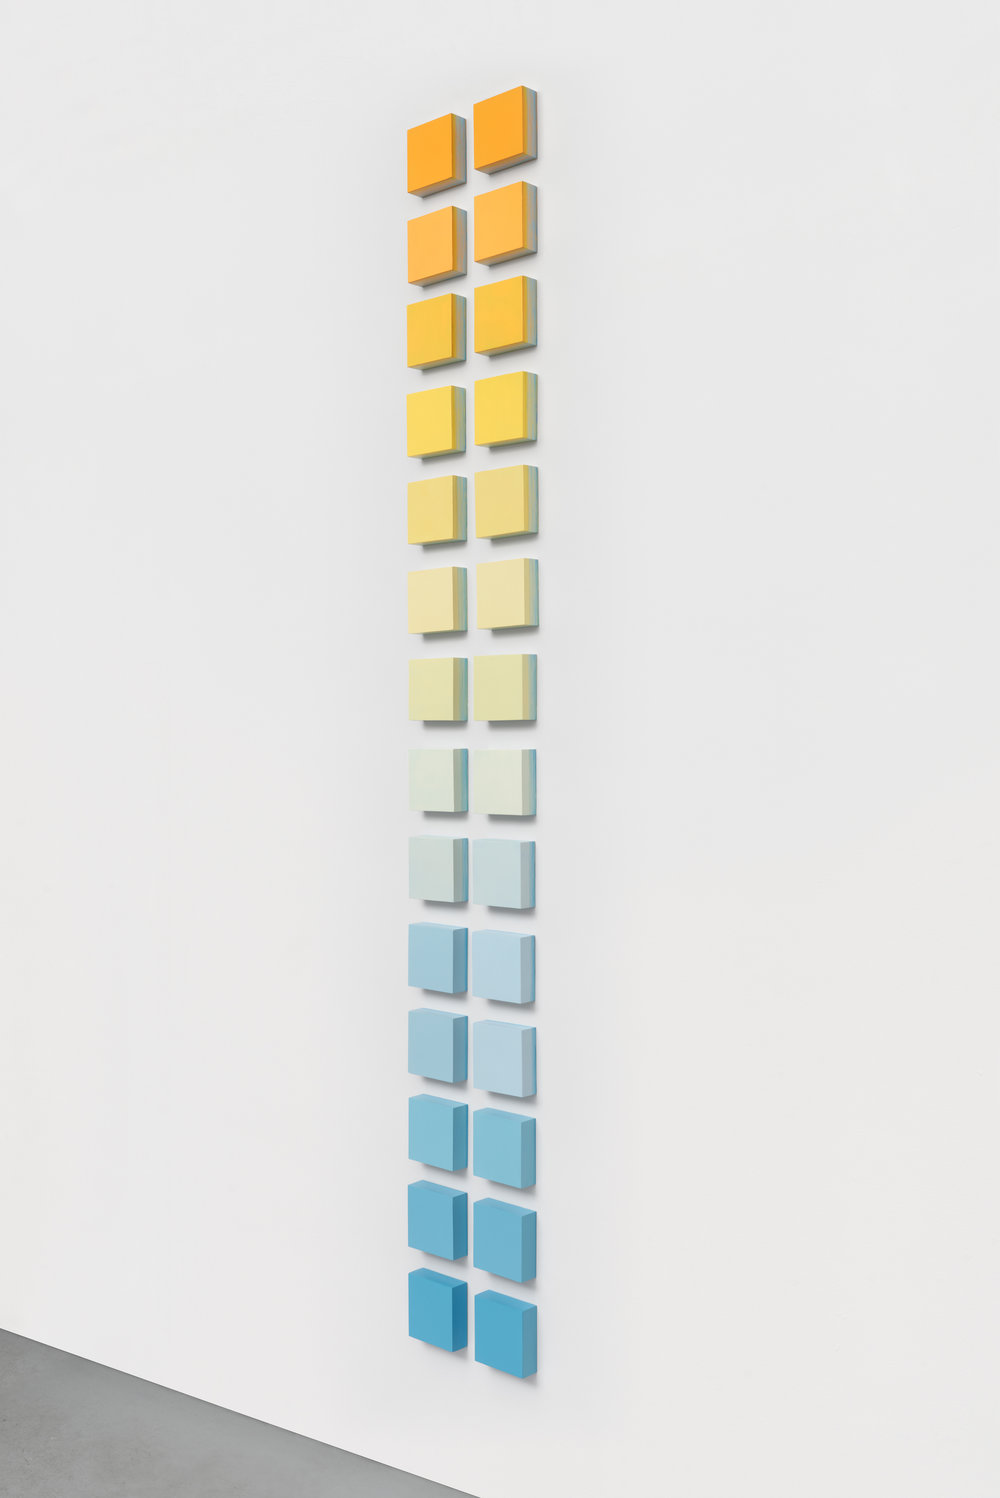 Mel Prest, Marigold Ladder, 2016, acrylic on panel, (28) 5 x 5 x 2 inch panels, 96 x 12 x 2 inches overall Courtesy of the Artist and Chandra Cerrito Contemporary, Oakland